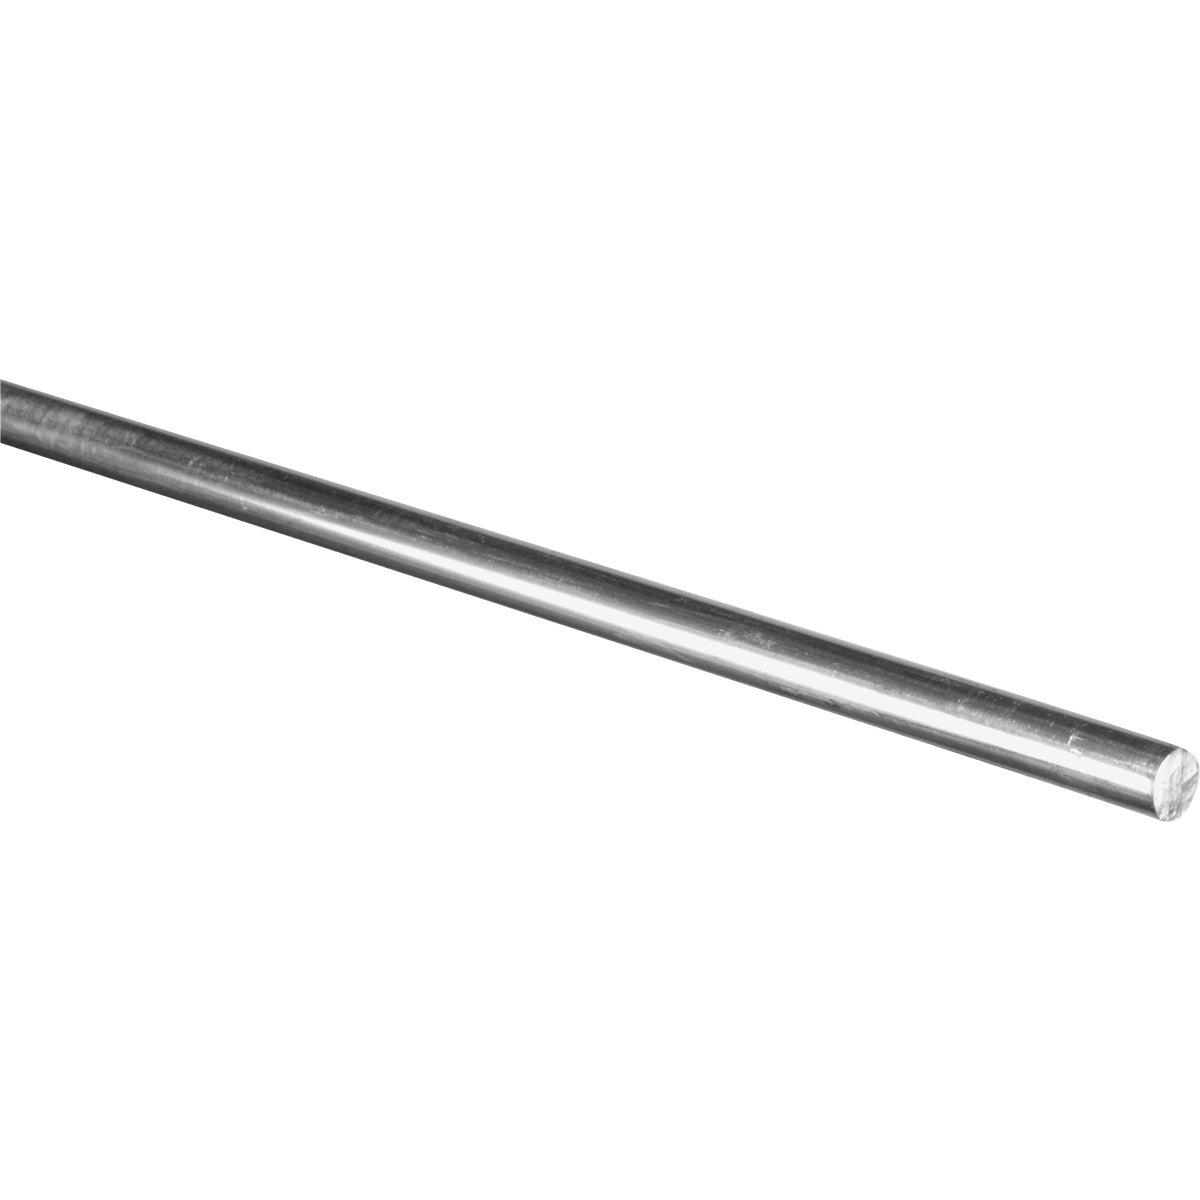 3/8X6' SOLID ROUND ROD - N247502 by National Mfg Co